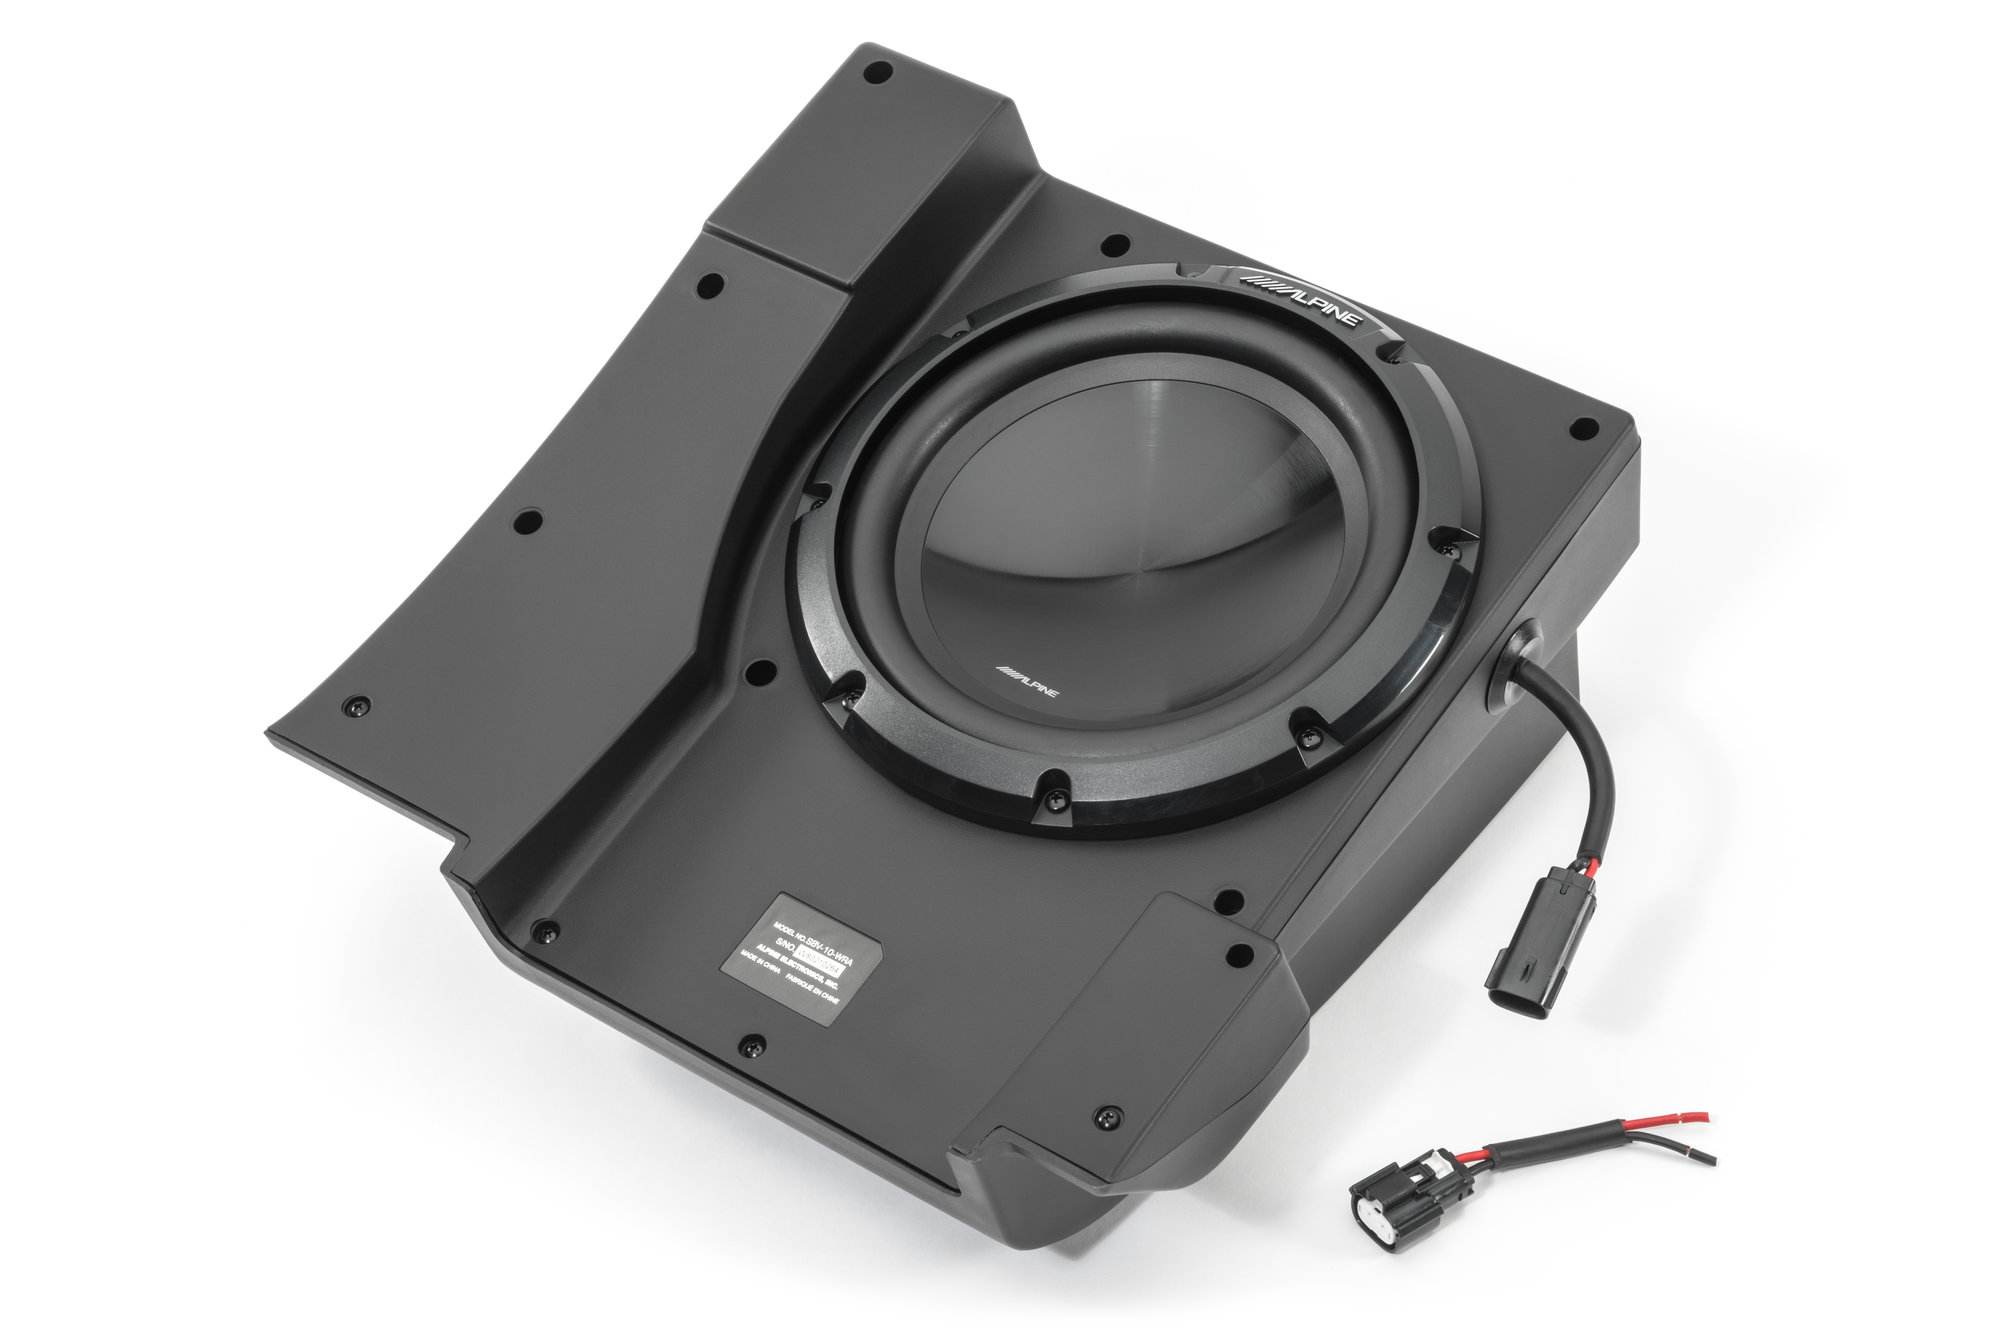 Alpine Sbv 10 Wra 10quot Water Resistant Subwoofer For 15 18